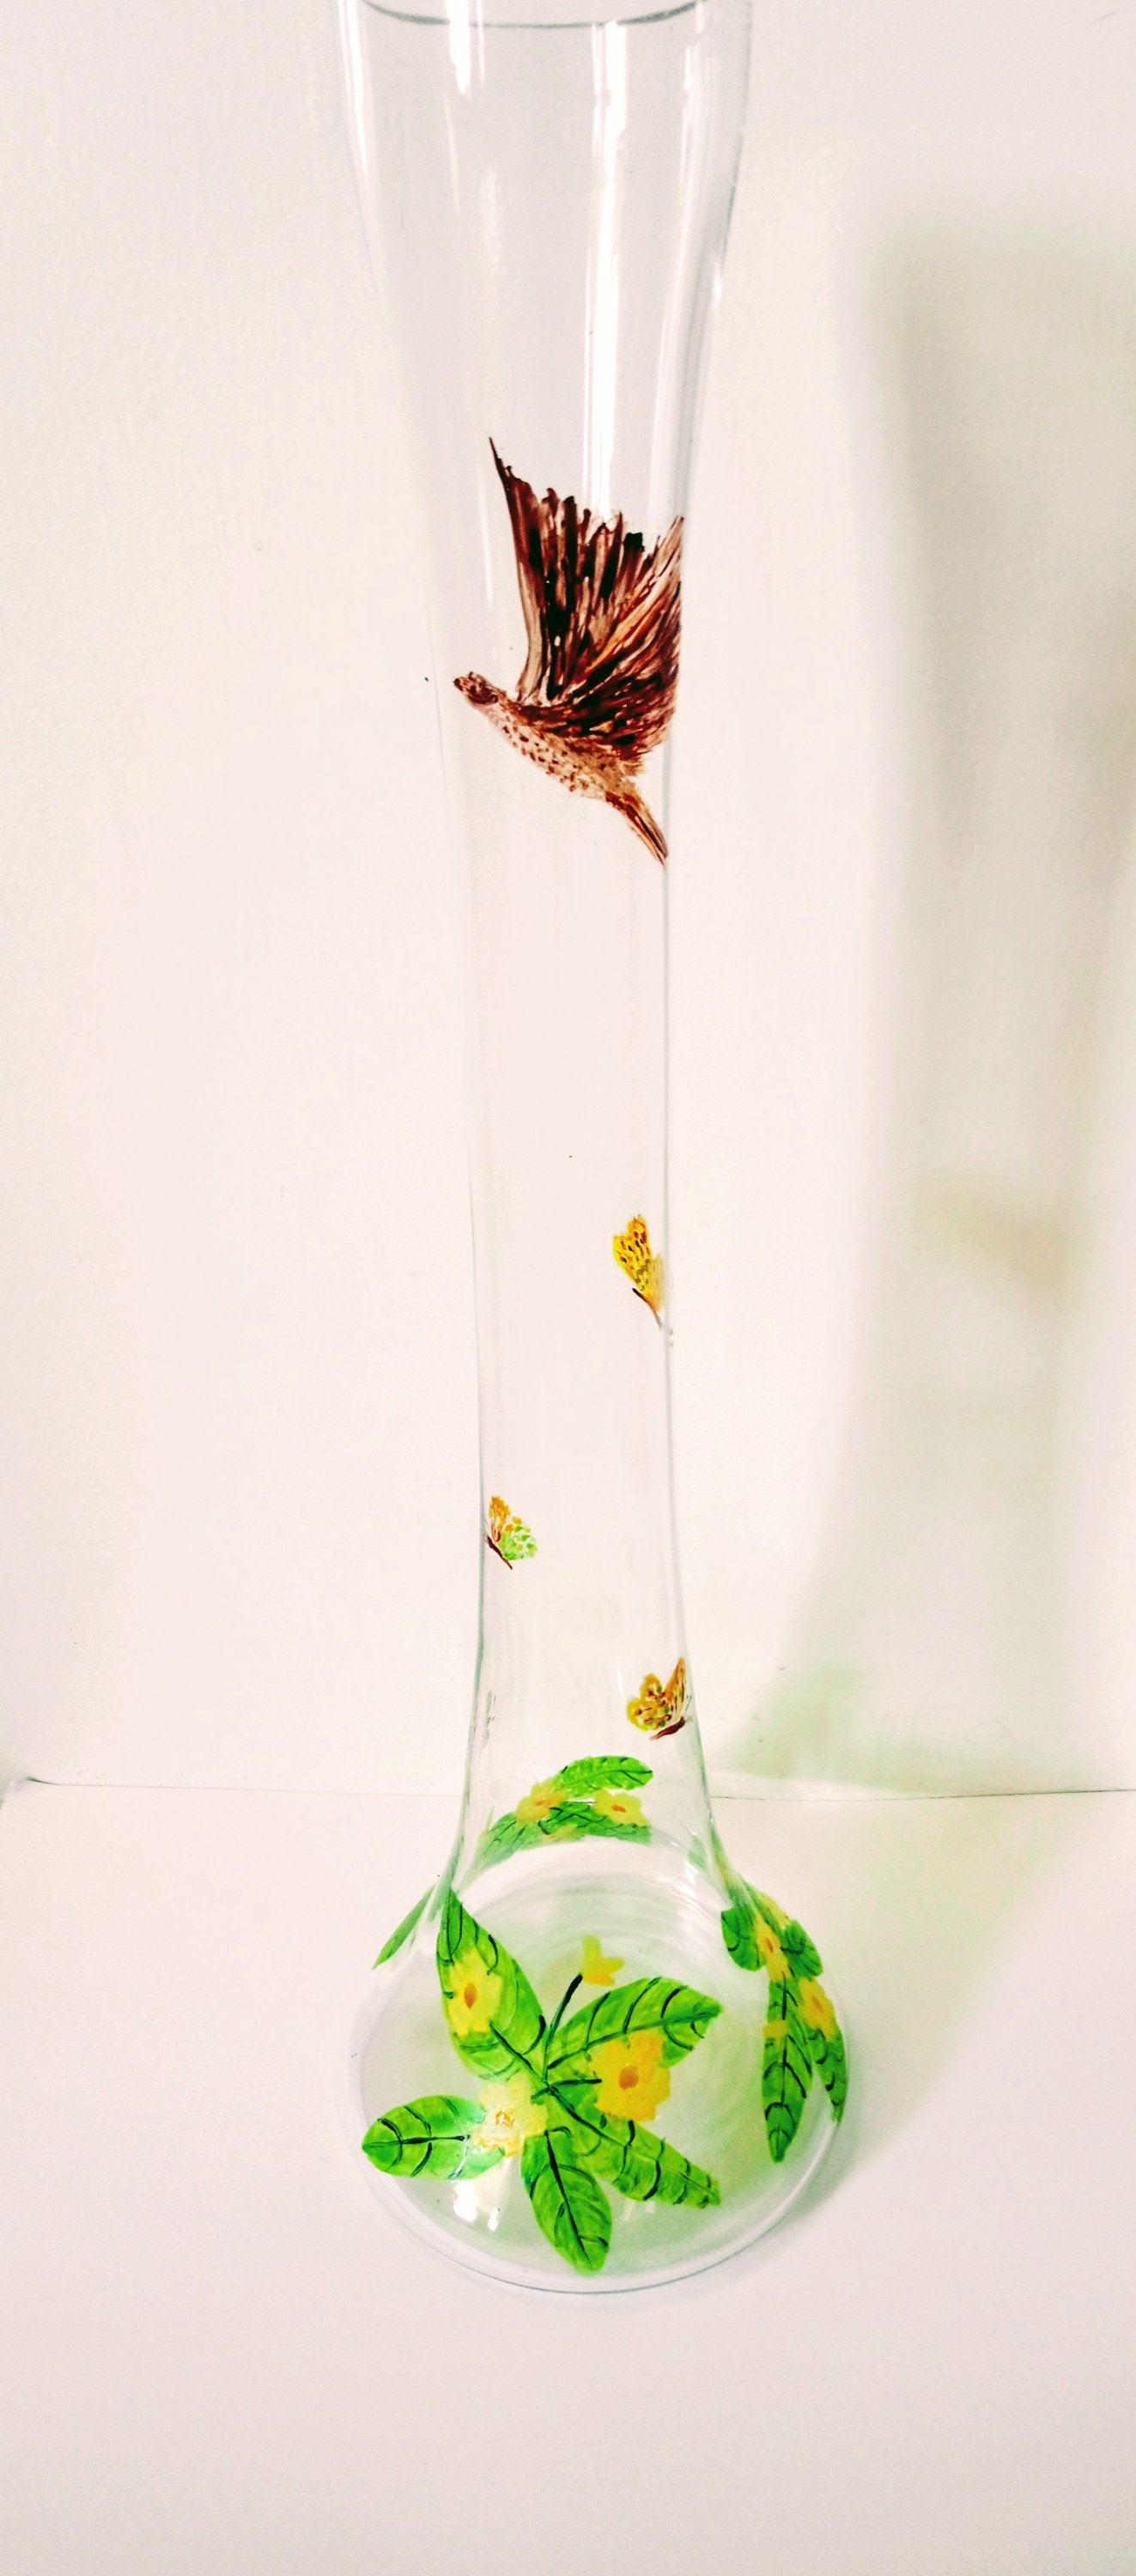 Lily vase with primroses and a bird